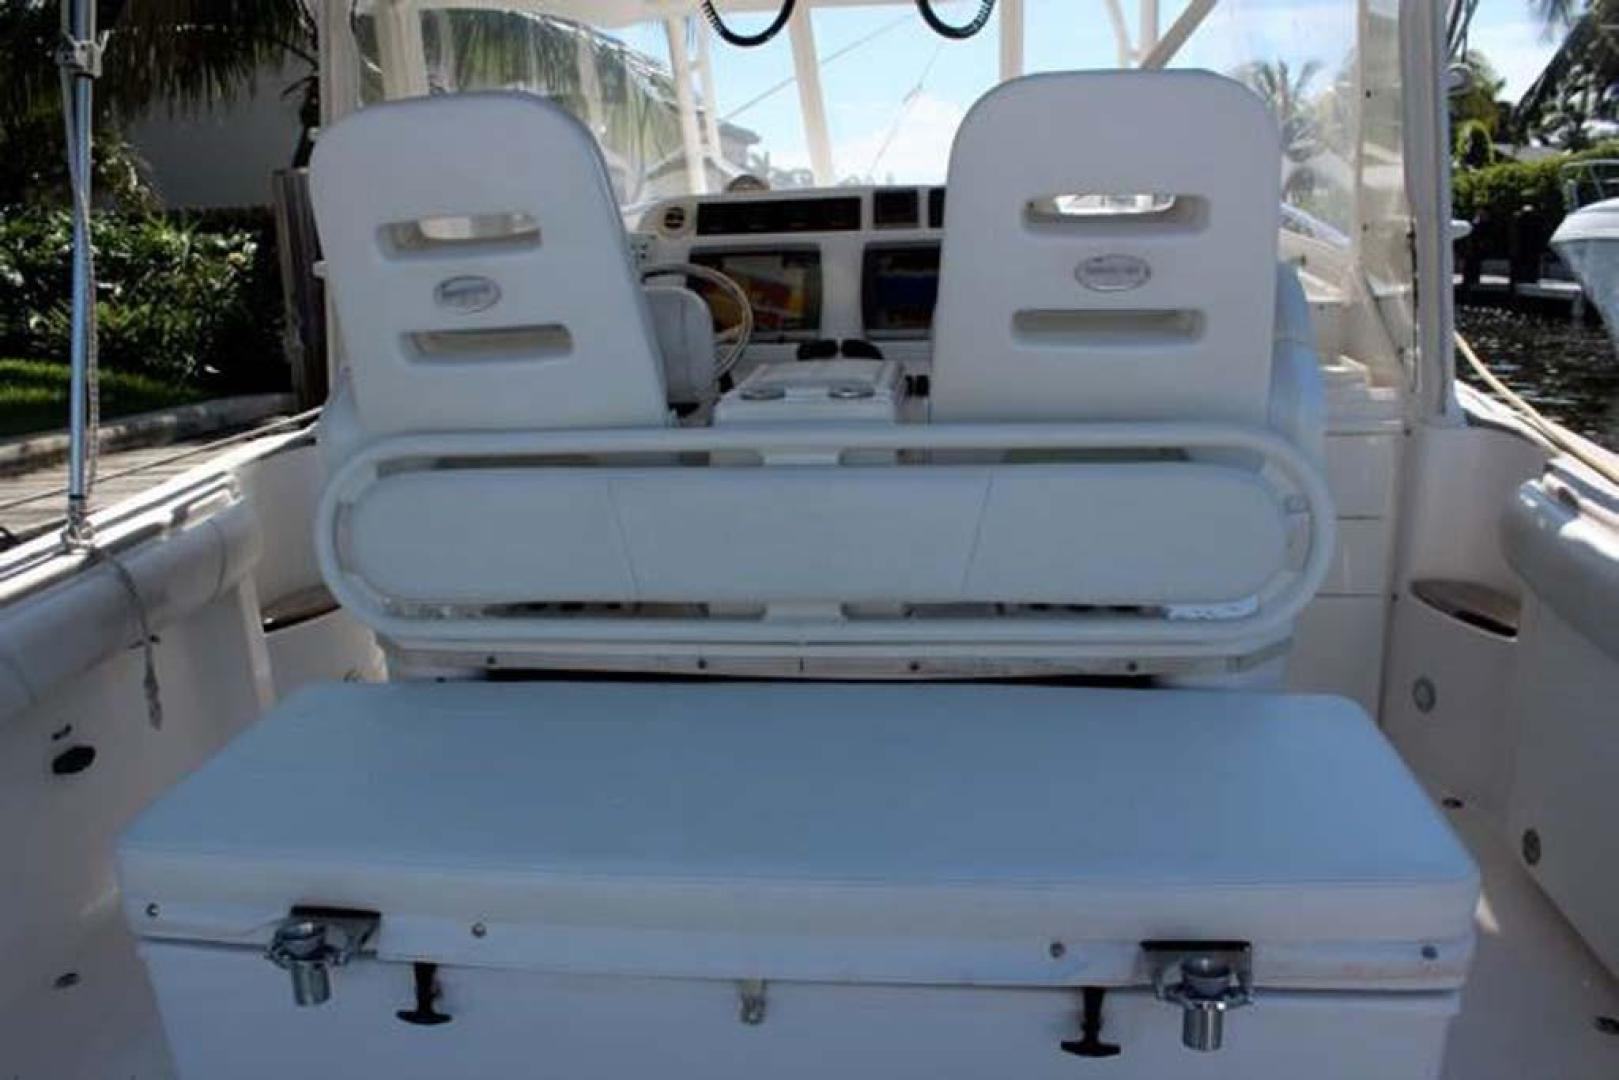 Everglades-35 LX NEW POWER 2010 -Delray Beach-Florida-United States-Cooler Box-923985 | Thumbnail